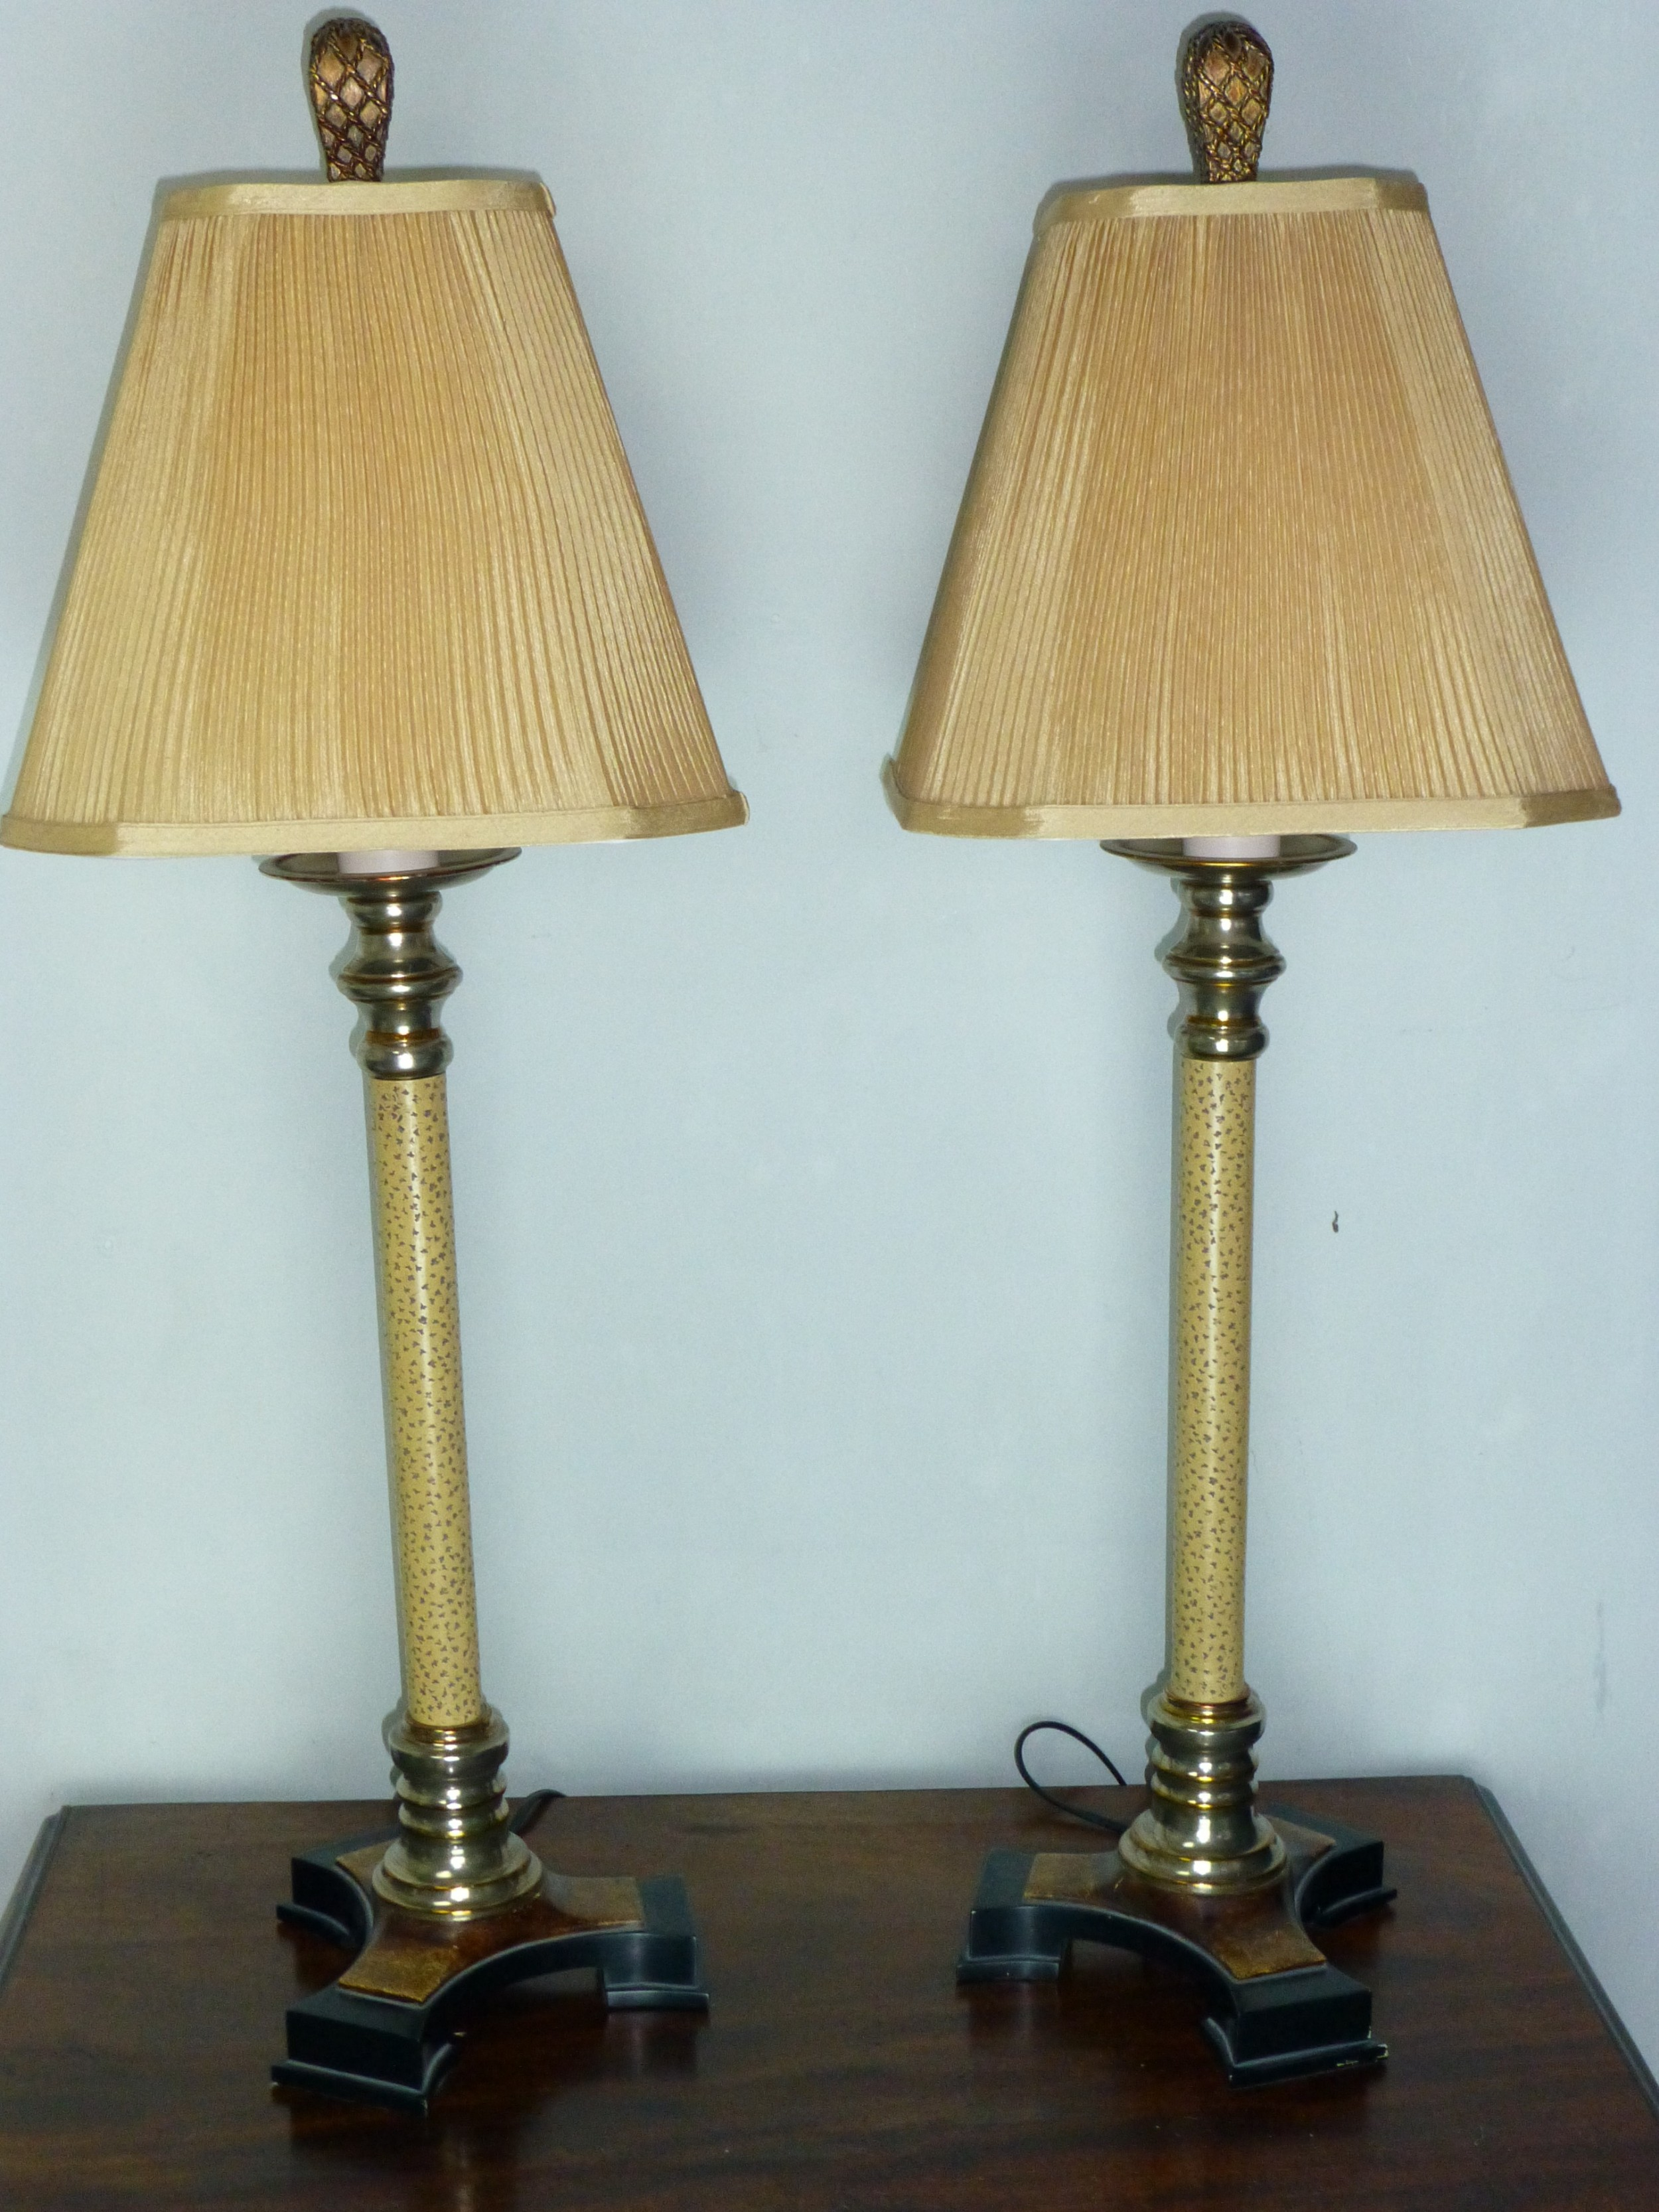 a splendid pair of large chrome and marble effect table lamps c1930